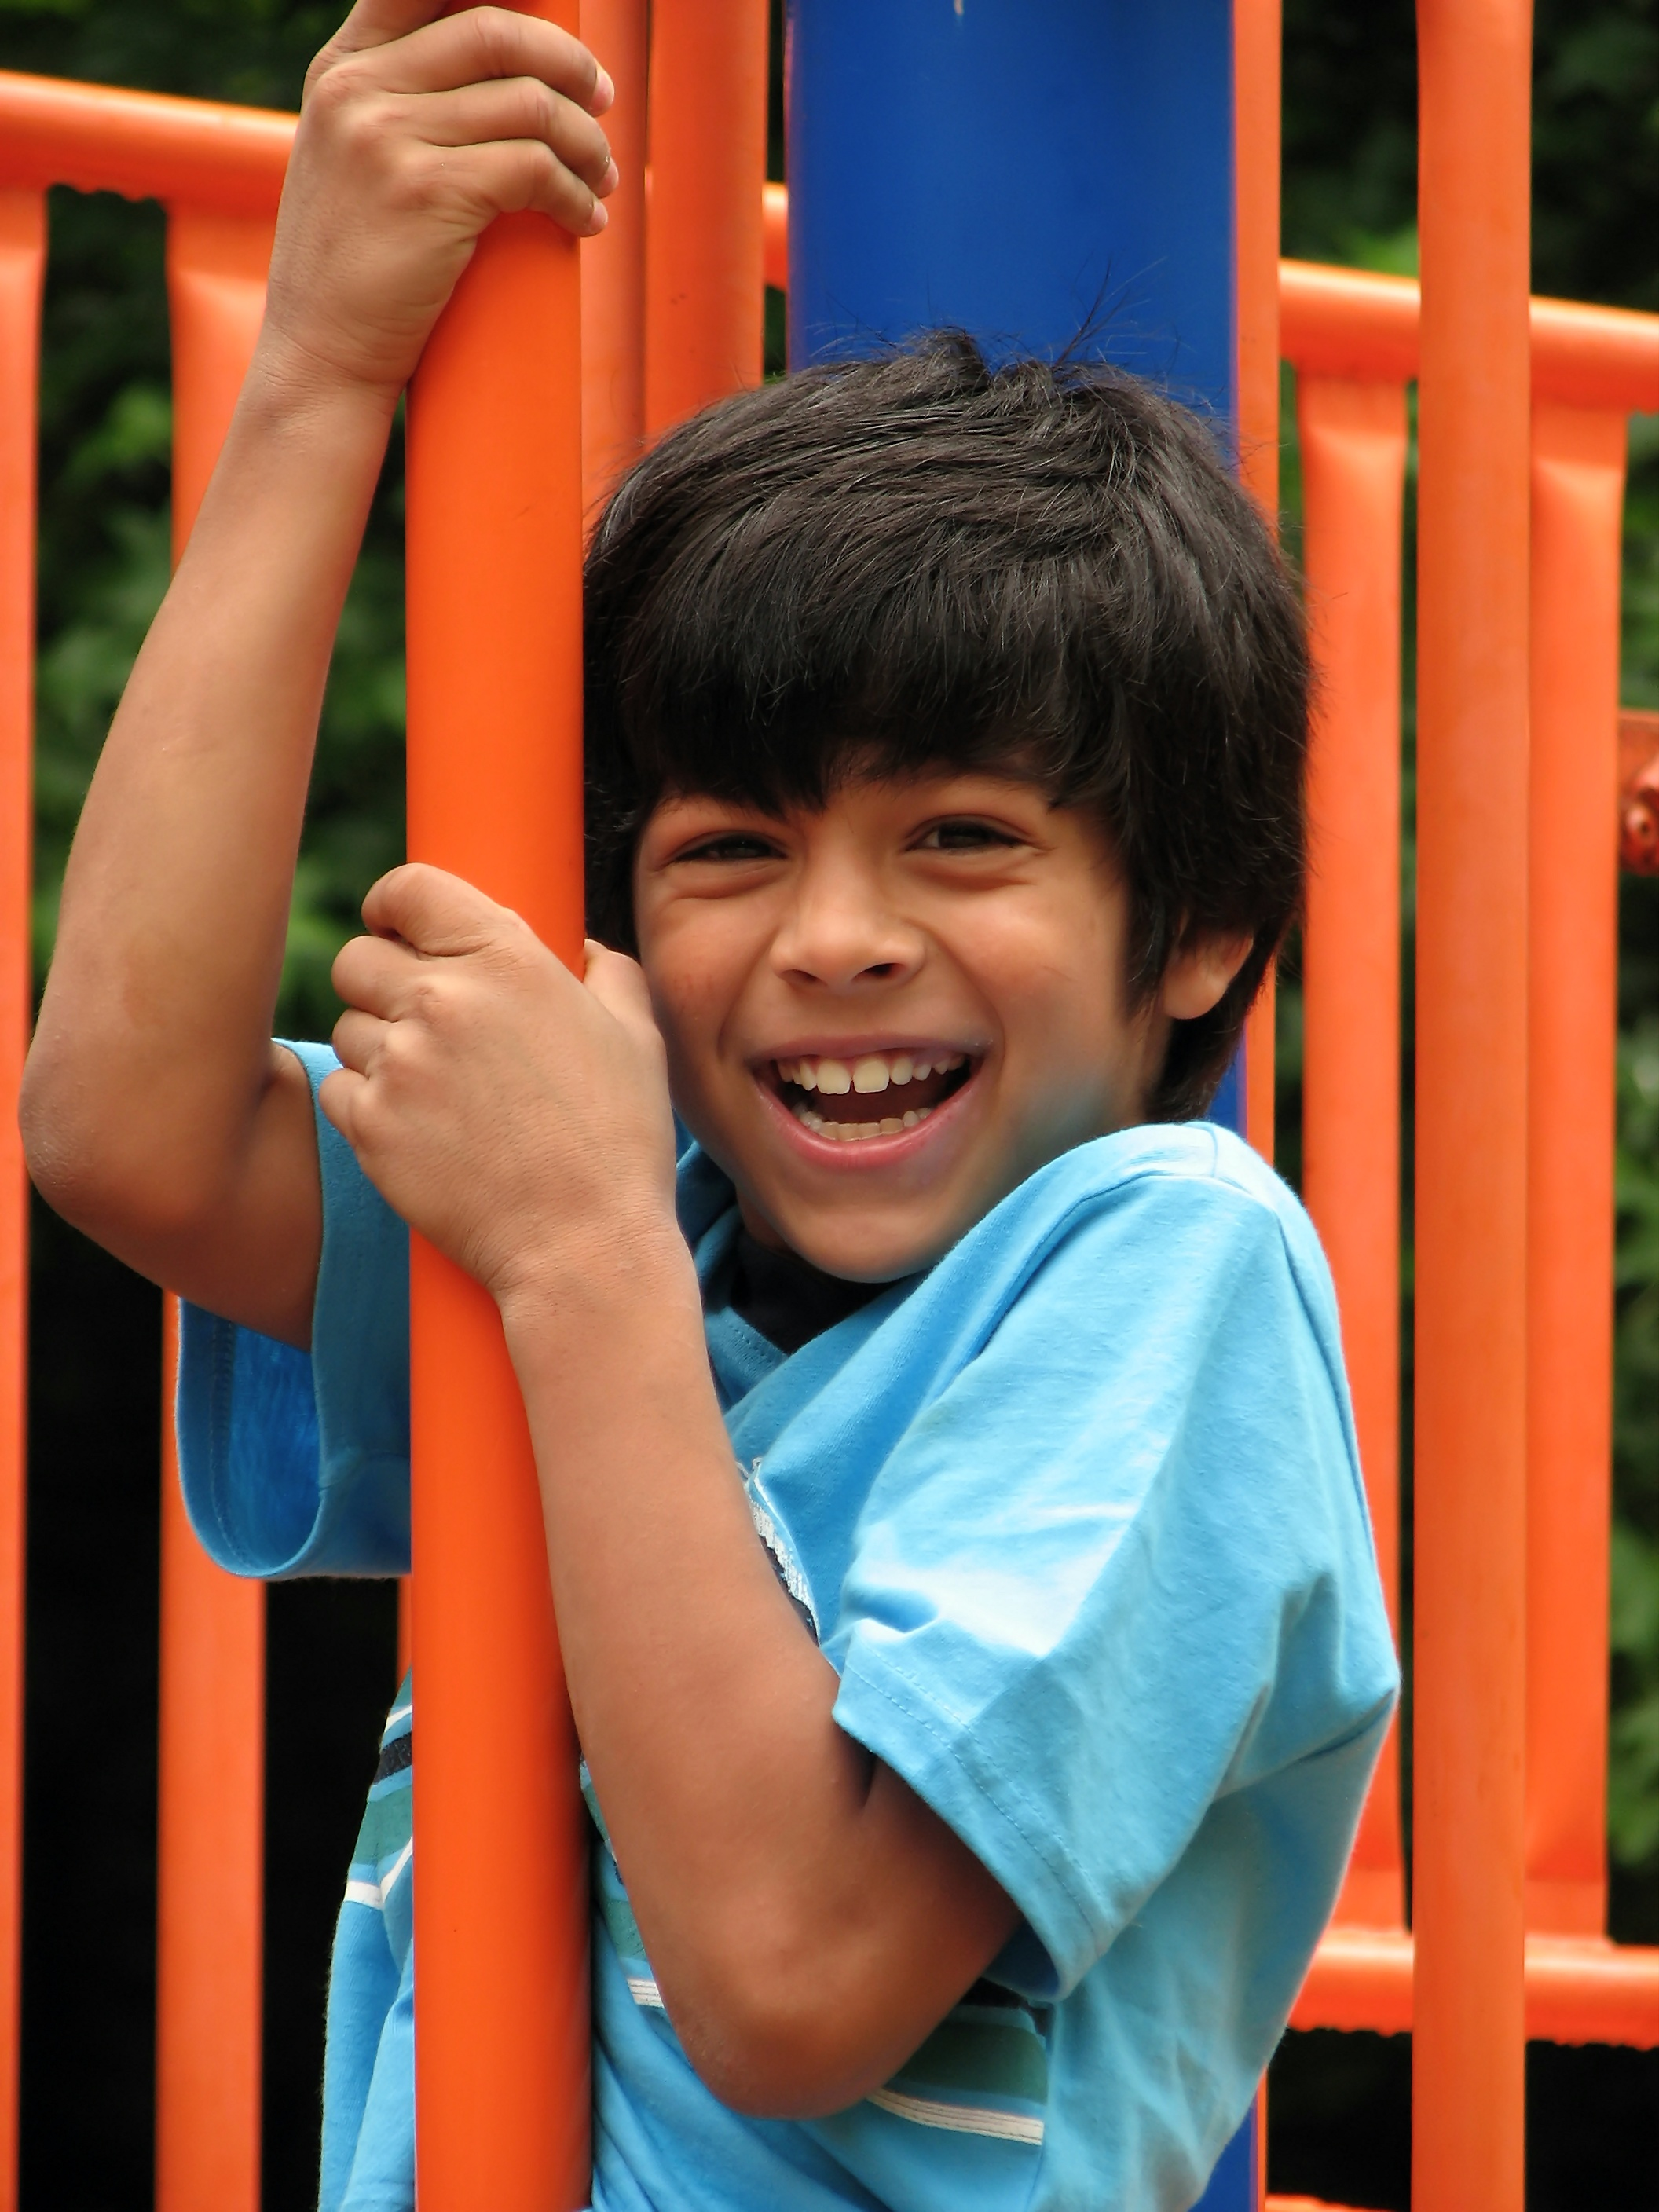 A young boy playing on a playground photo